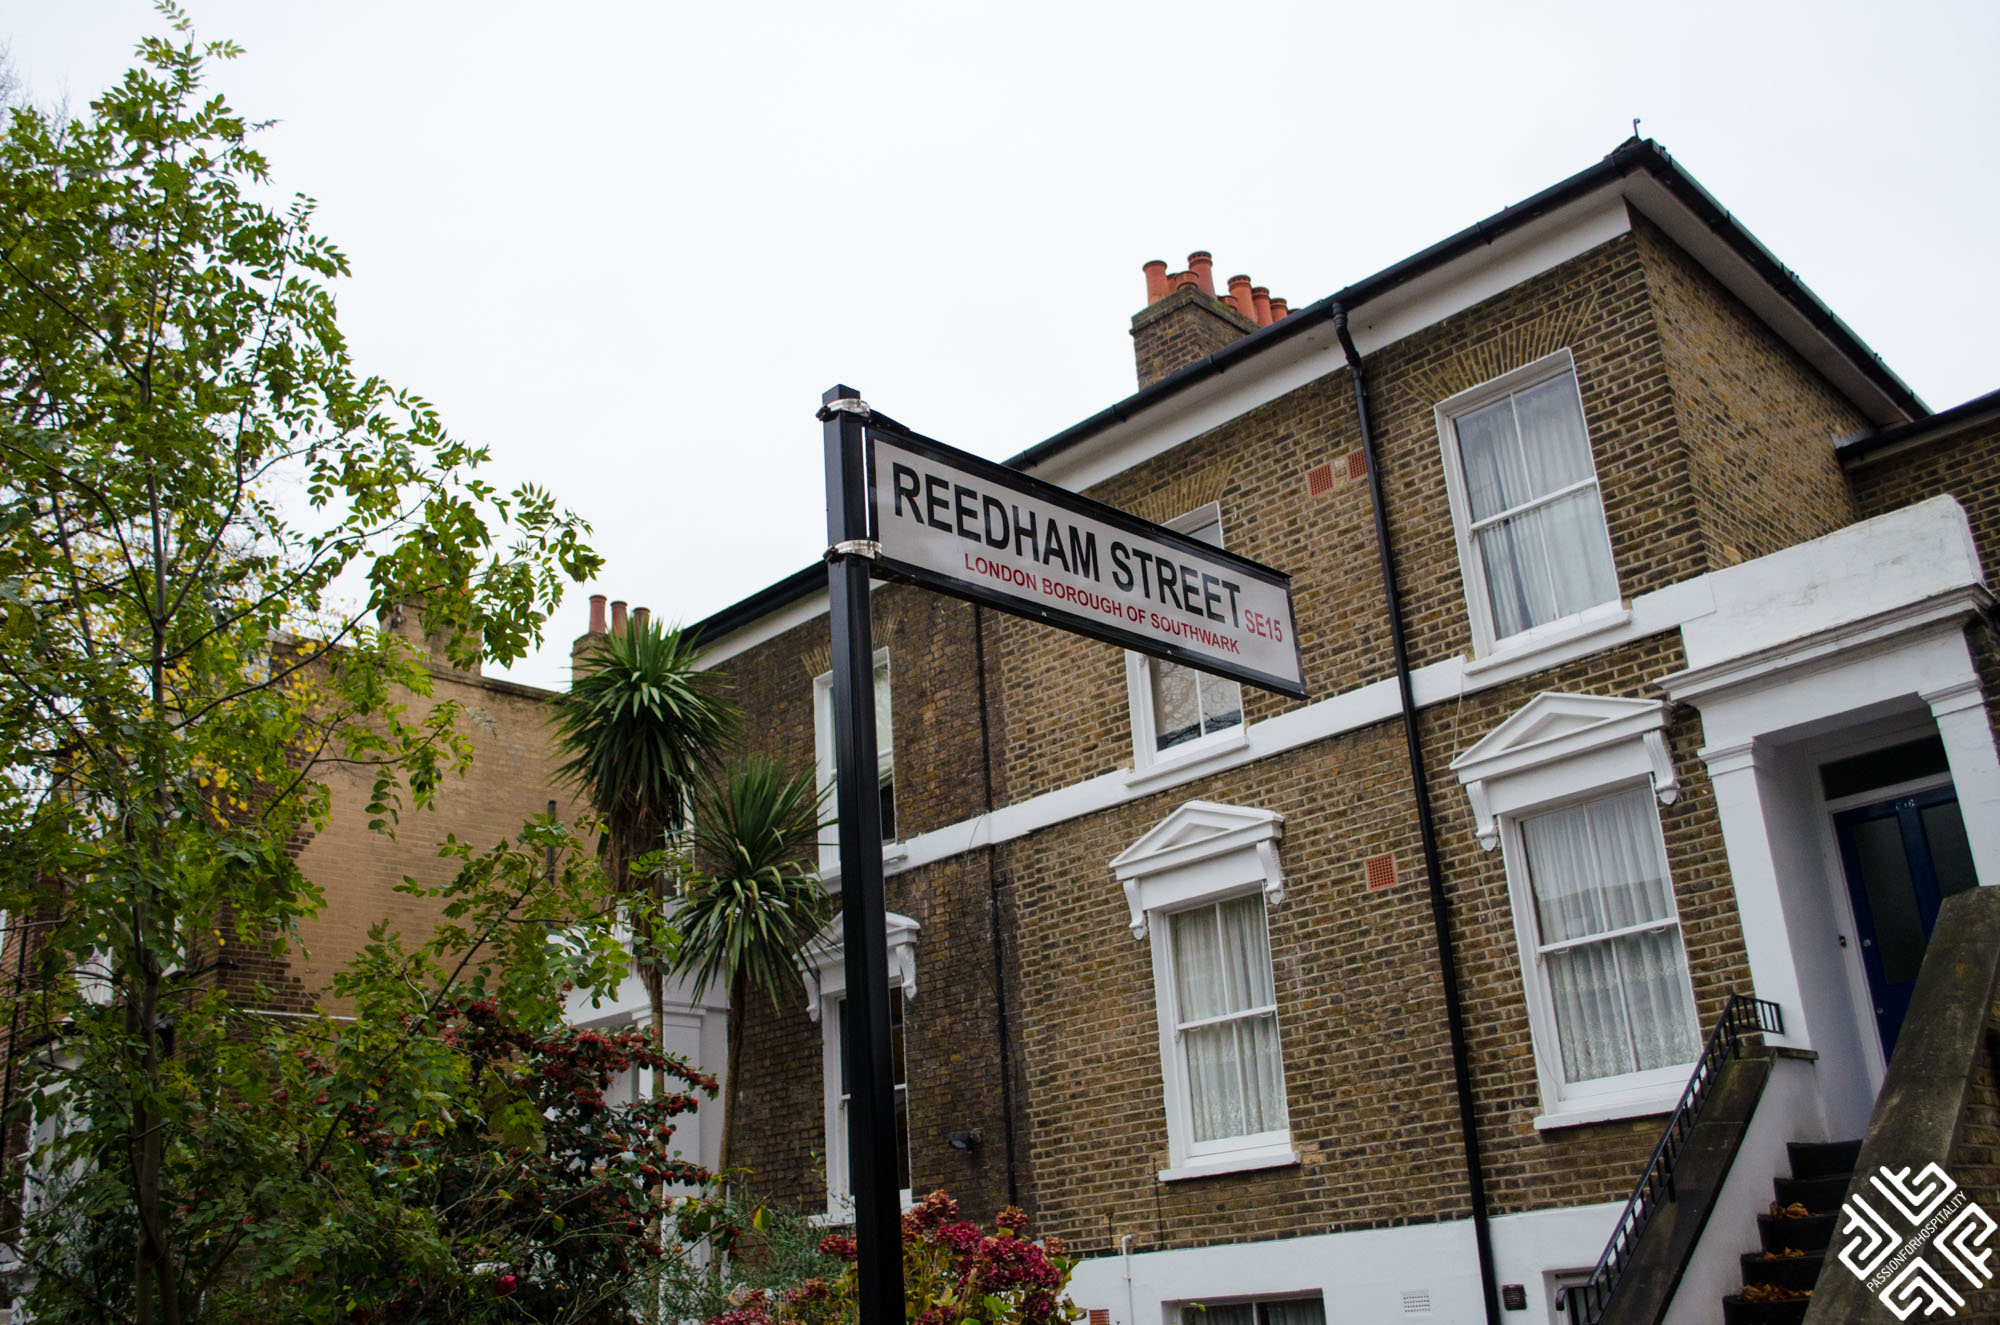 Victoria Inn: Boutique Bed and Breakfast in Peckham